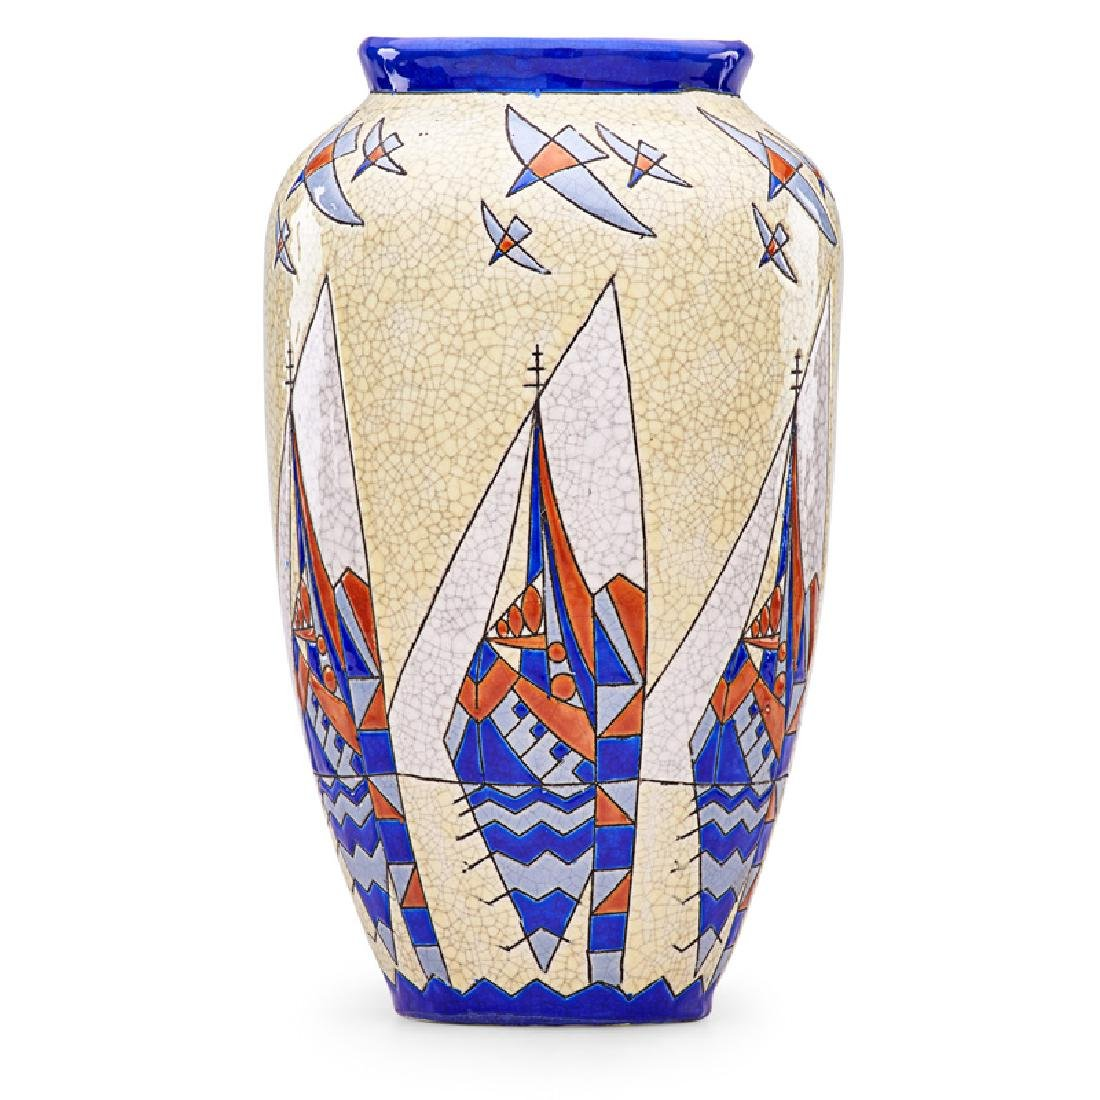 BOCH FRERES Large Keramis vase with boats